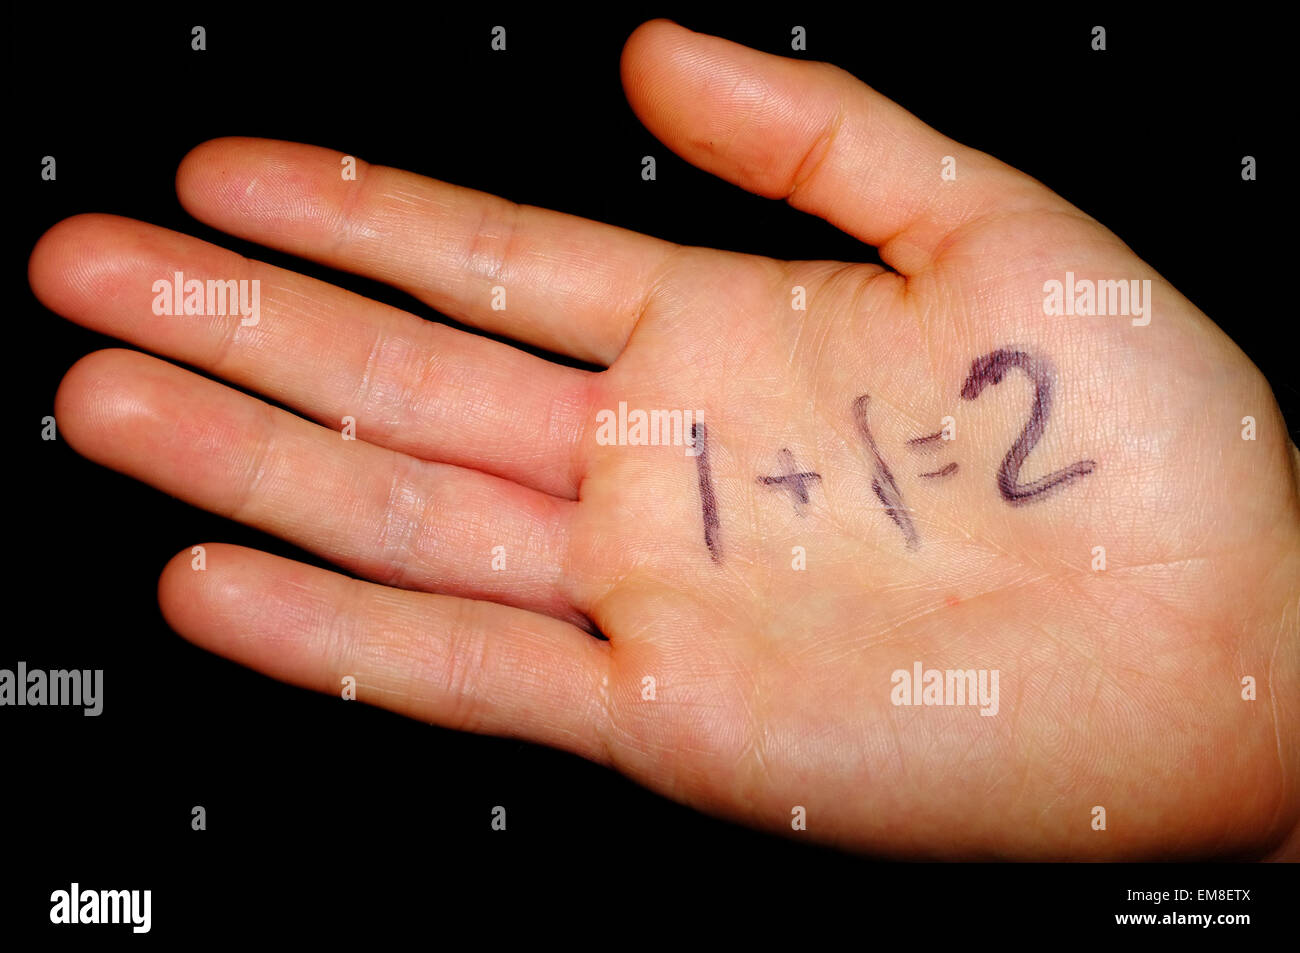 A simple maths sum written on the palm of a hand photographed against a black background. - Stock Image